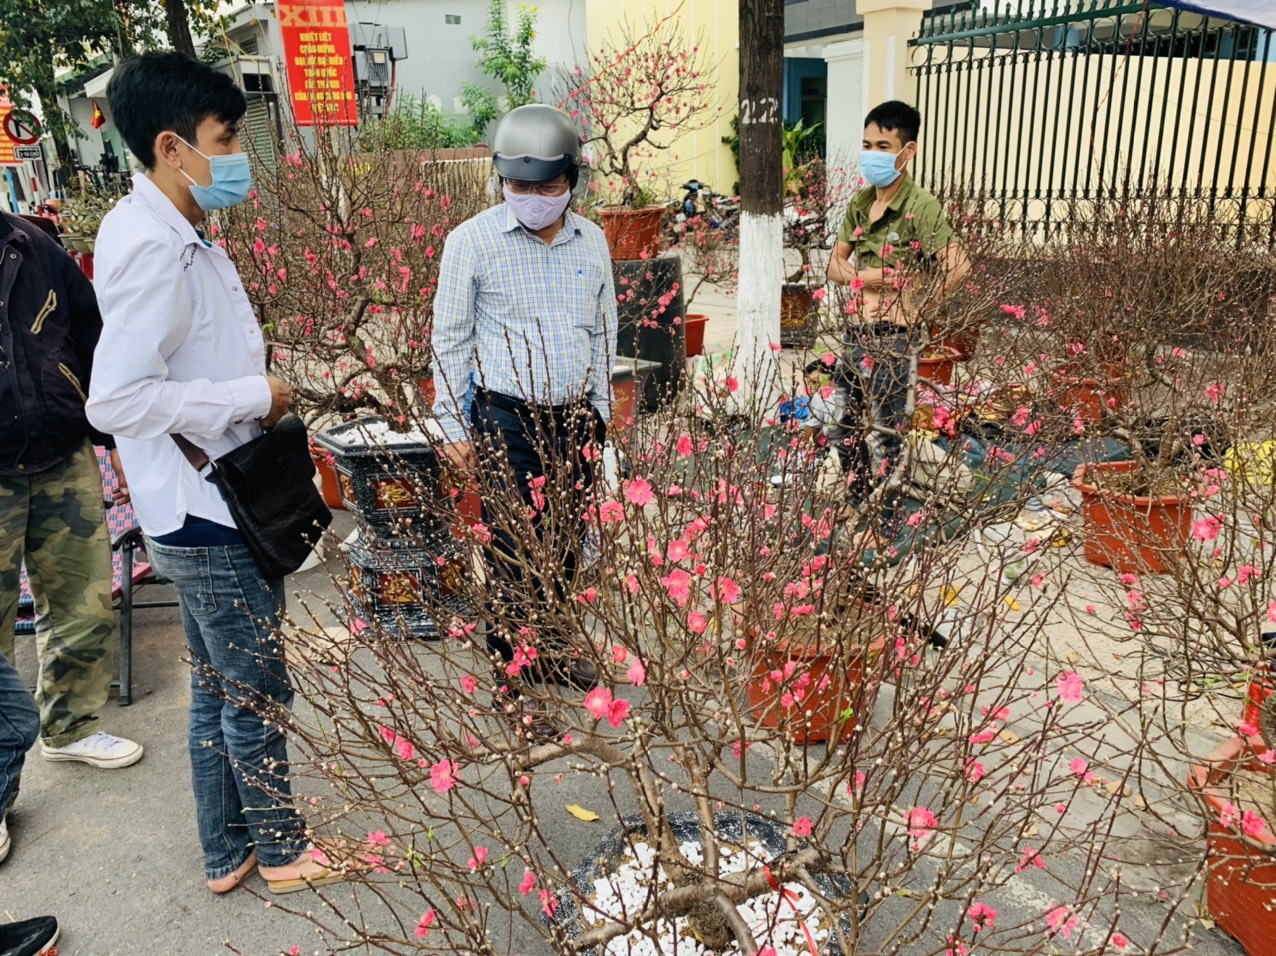 People shopping for Tet flowers